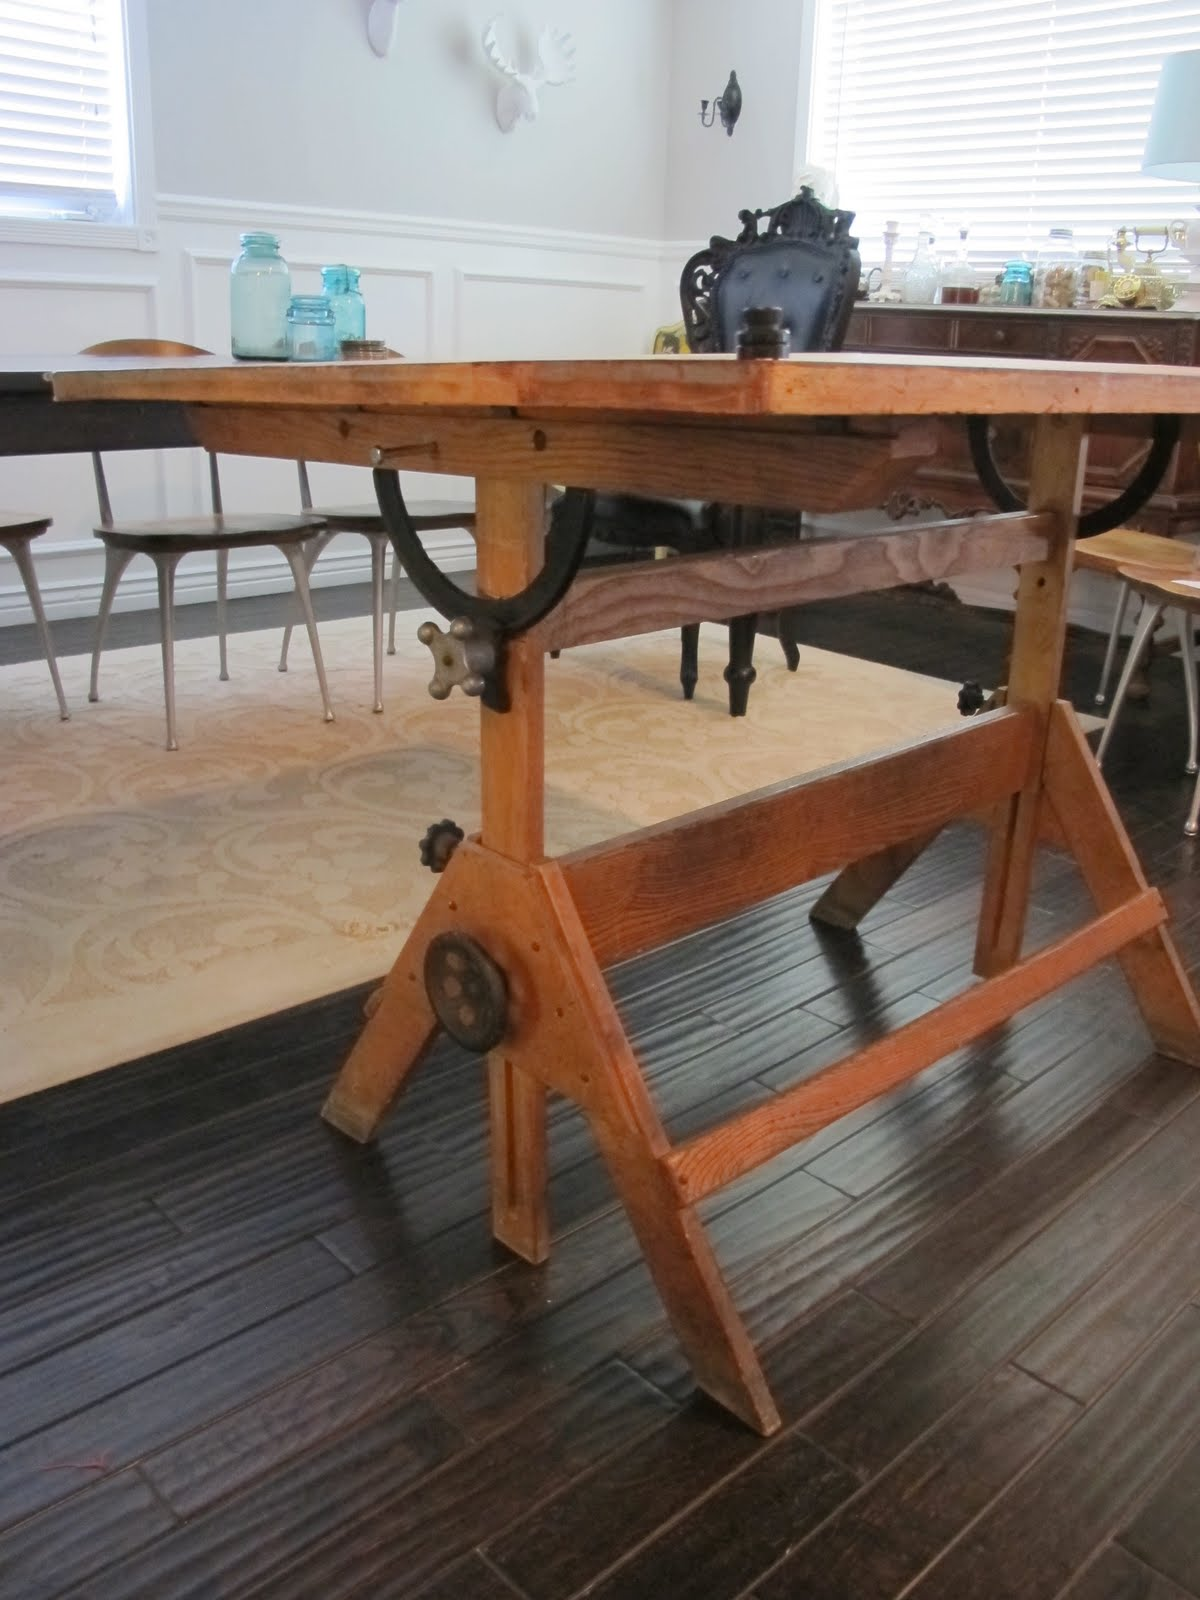 High Quality Vintage Drafting Table Turned Dining Table